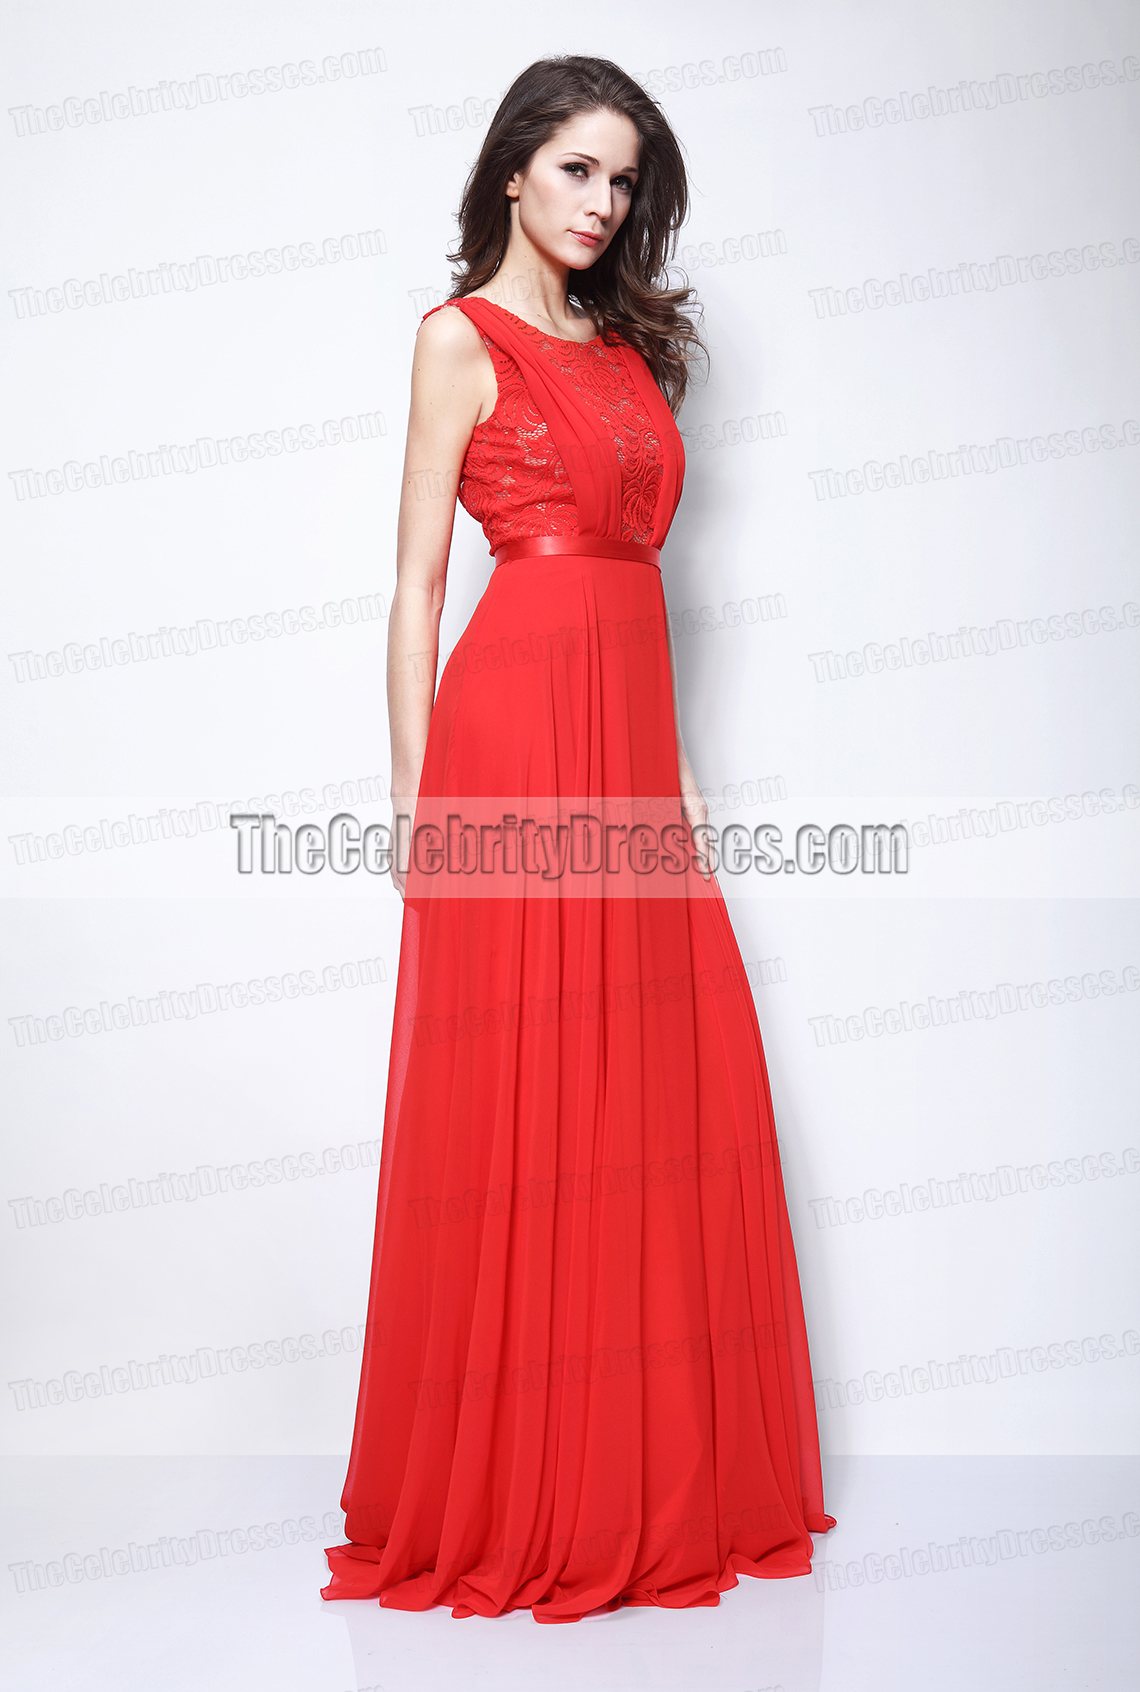 ximena navarrete rot backless abendkleid 66. cannes filmfest promi-kleid